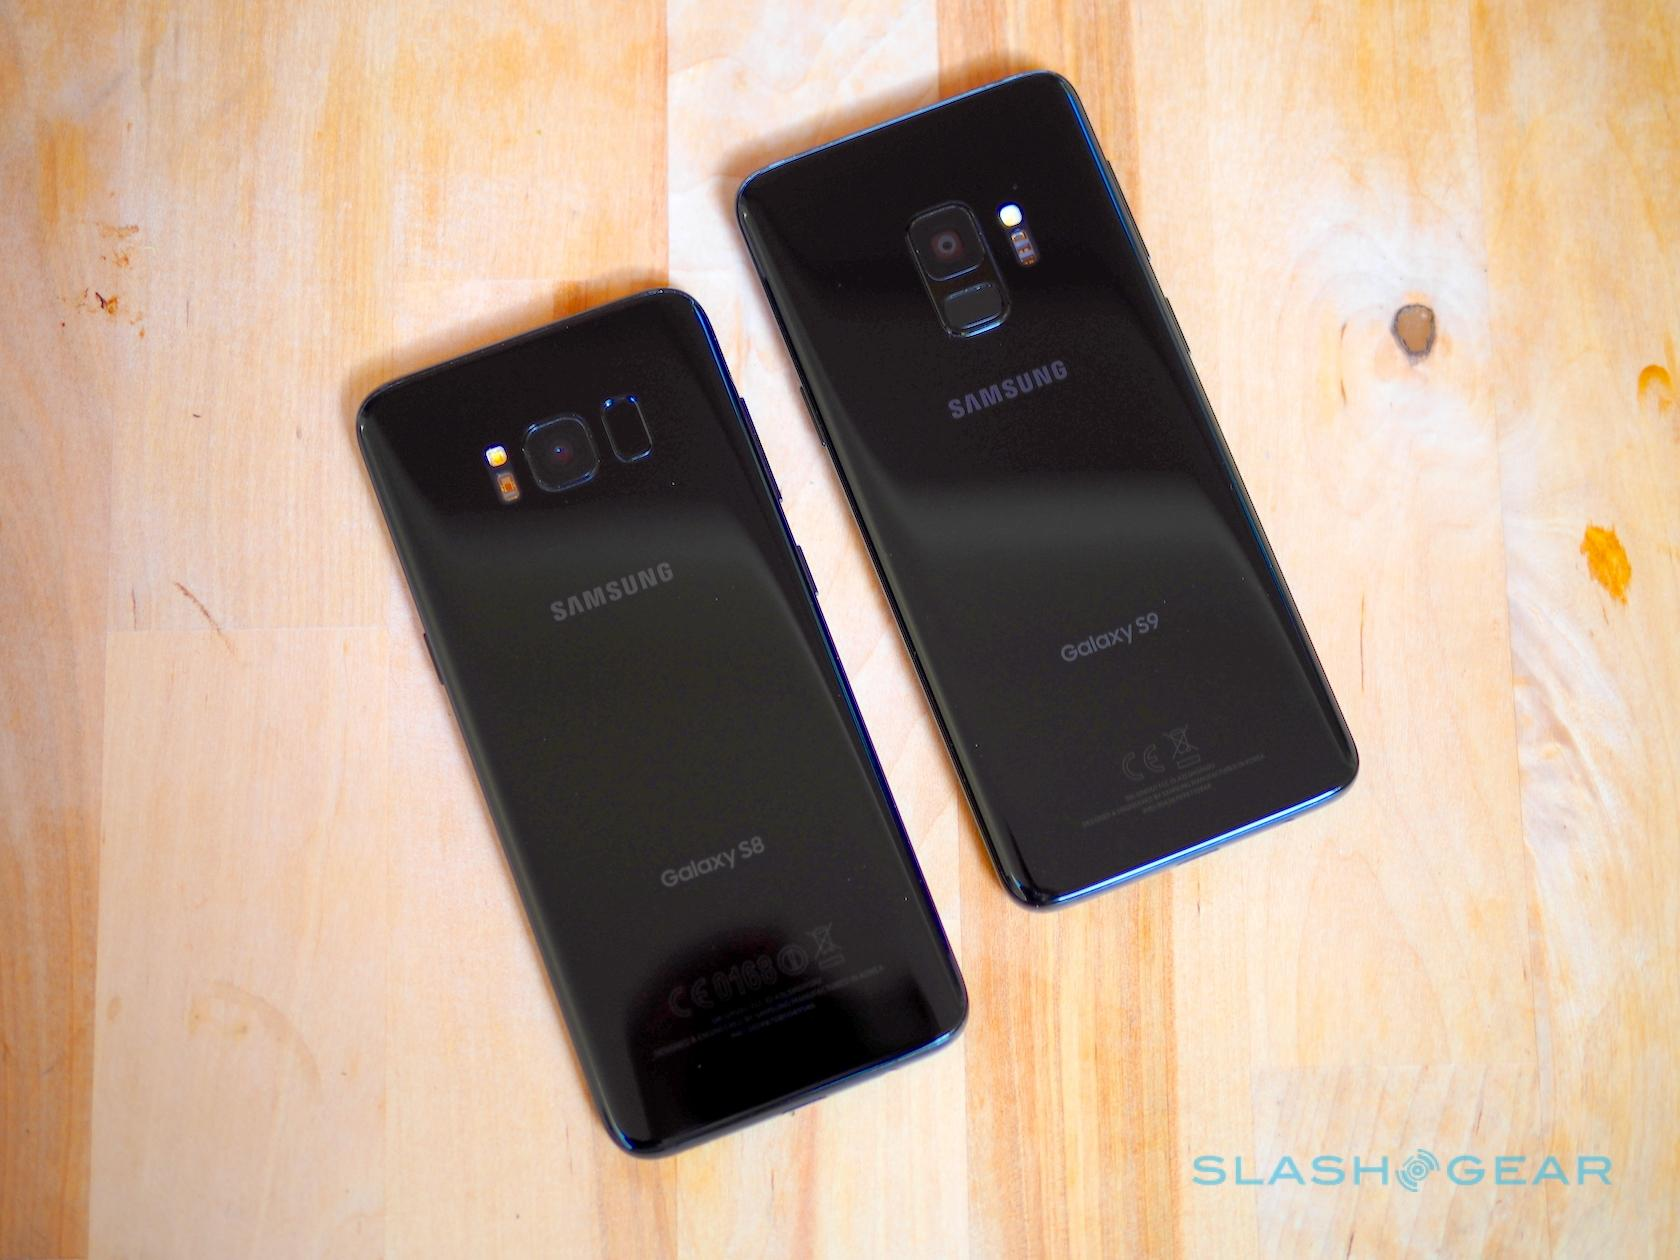 Our Samsung Galaxy S9 potential buyer's guide: Pros and Cons